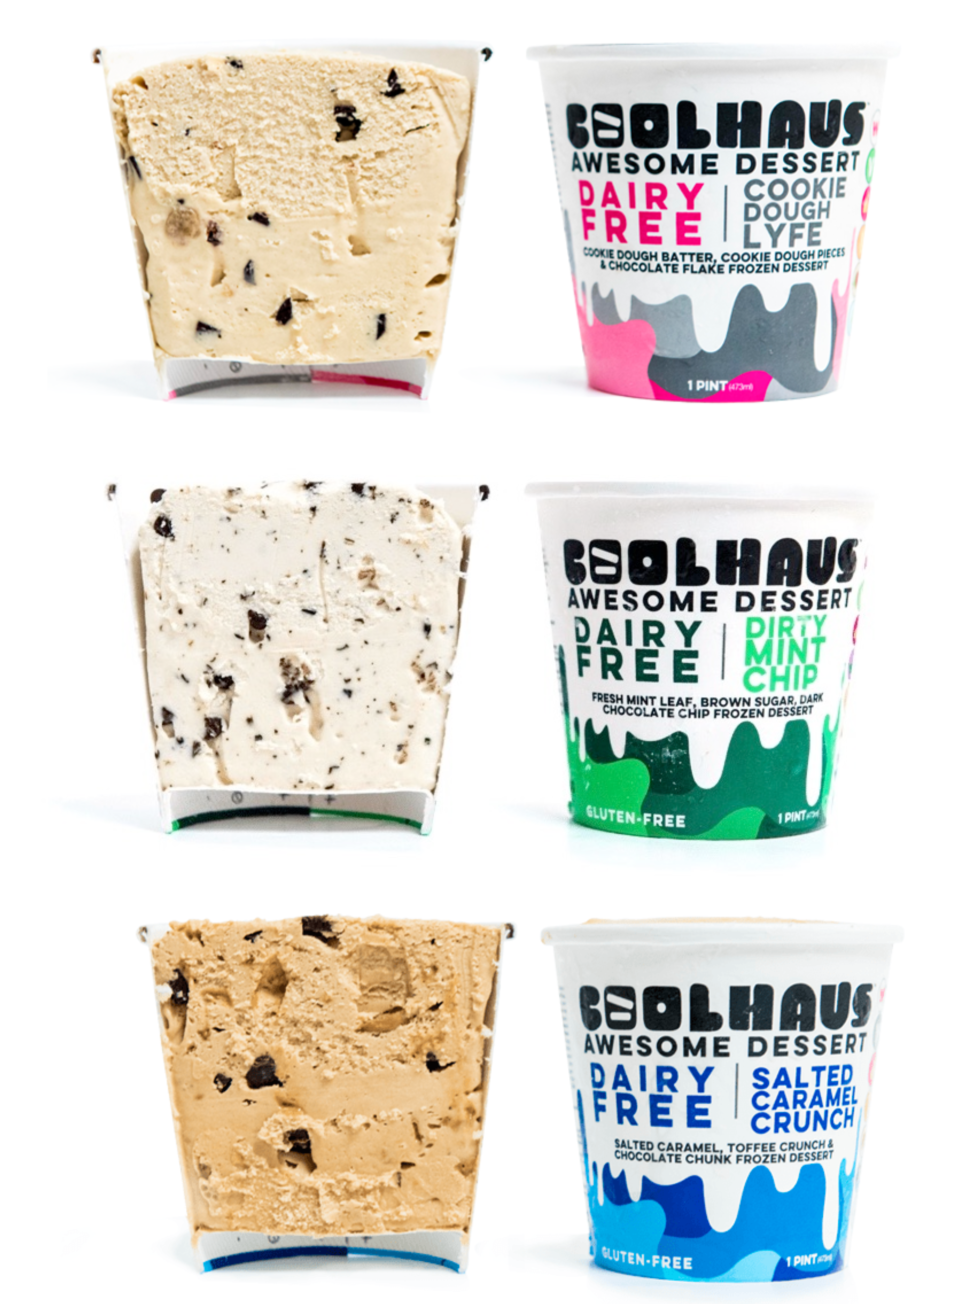 Healthy ice cream: Coolhaus's vegan, organic, dairy-free ice cream taste like gourmet ice cream